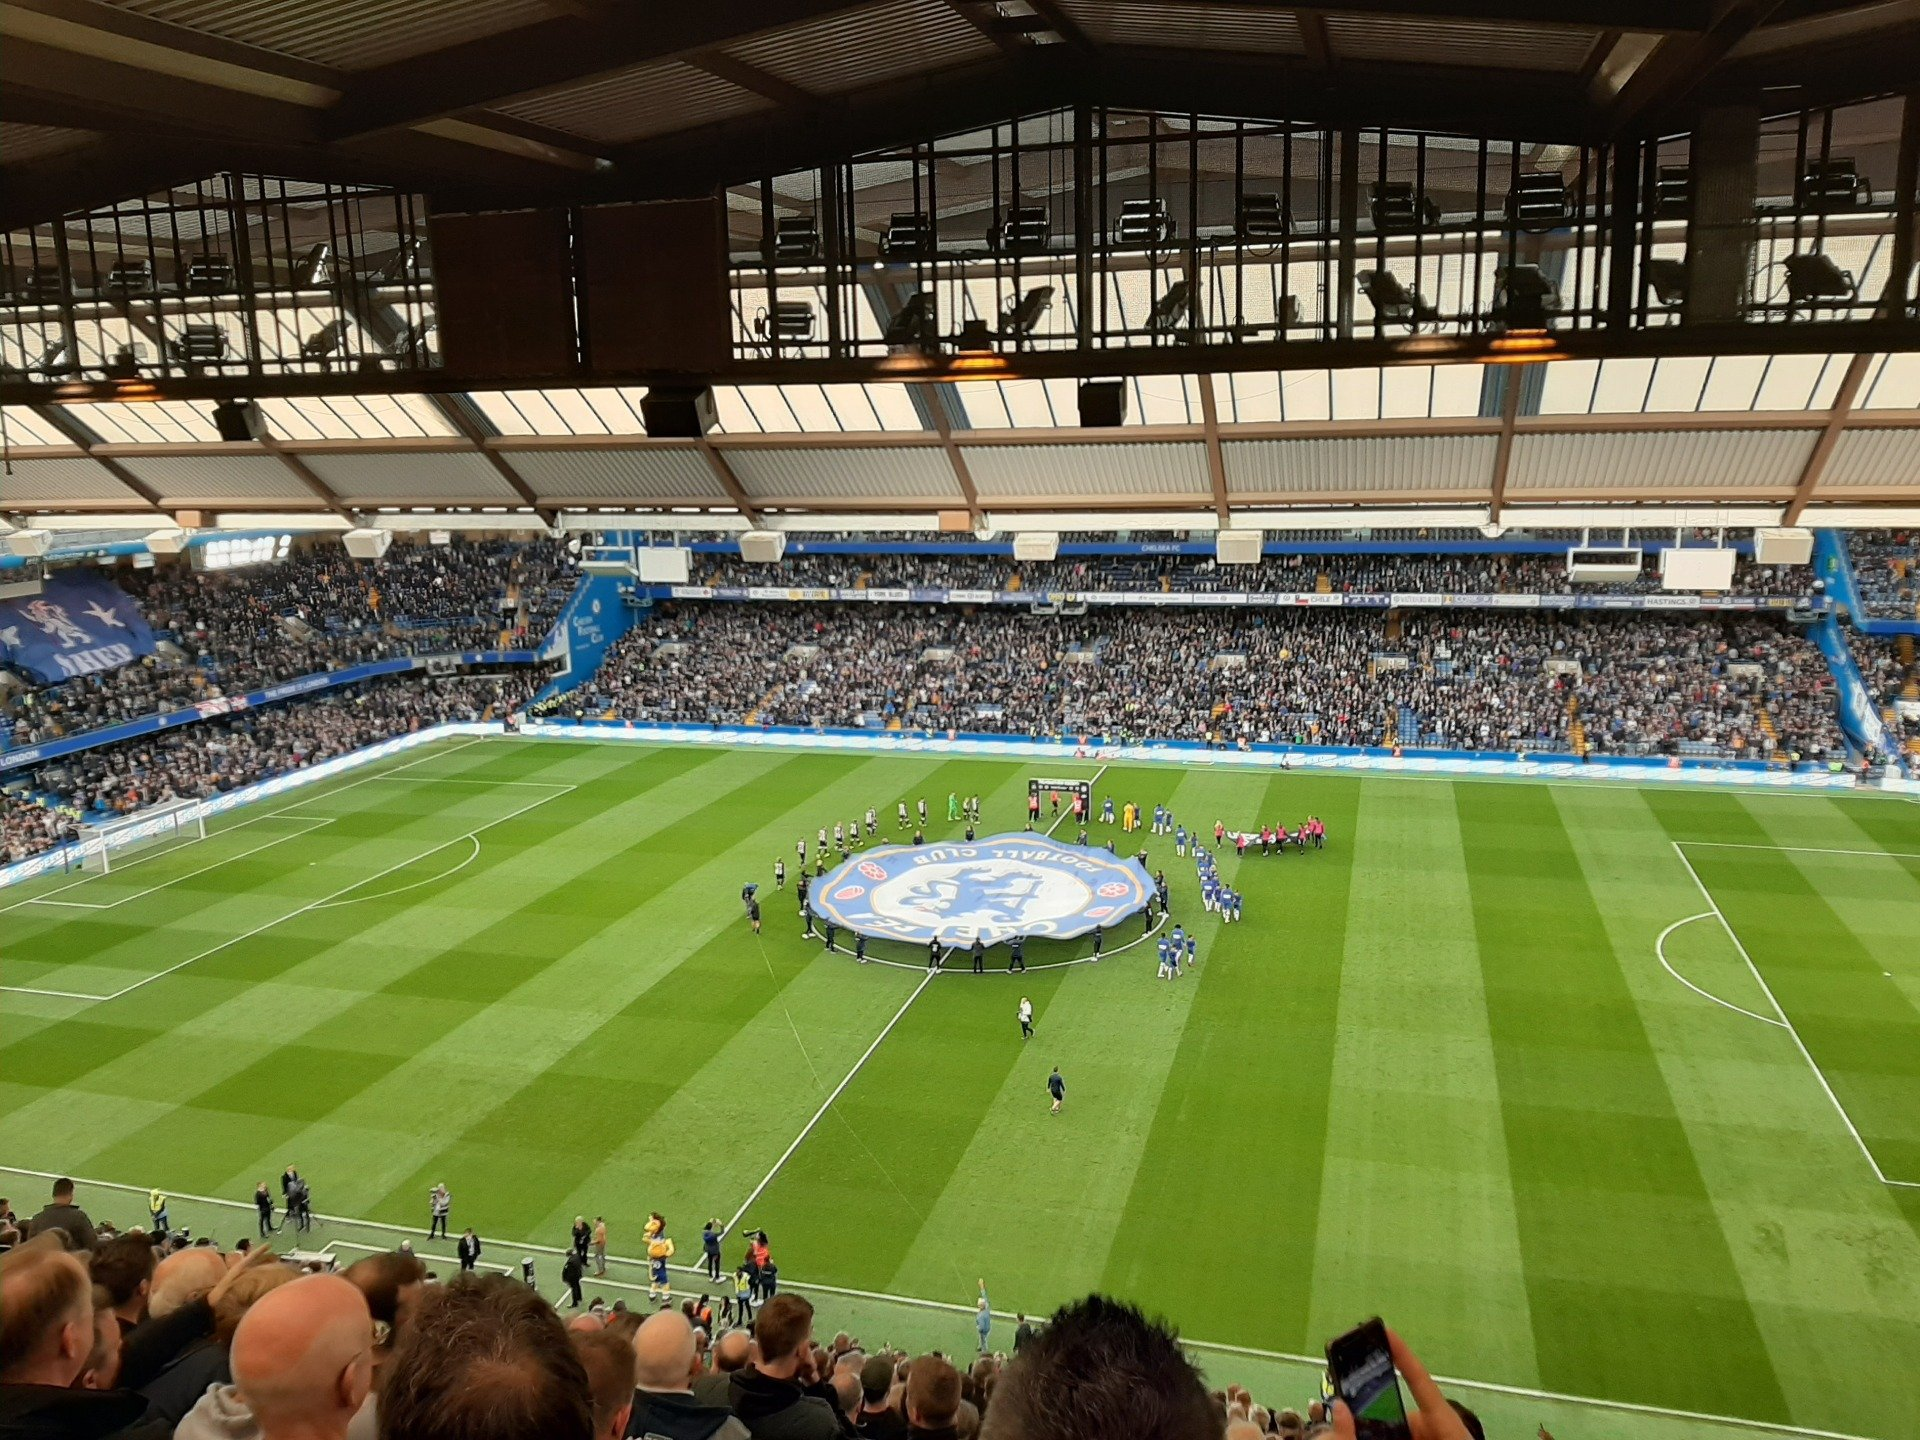 Stamford Bridge Section West Stand Upper 3 Row 26 Seat 53